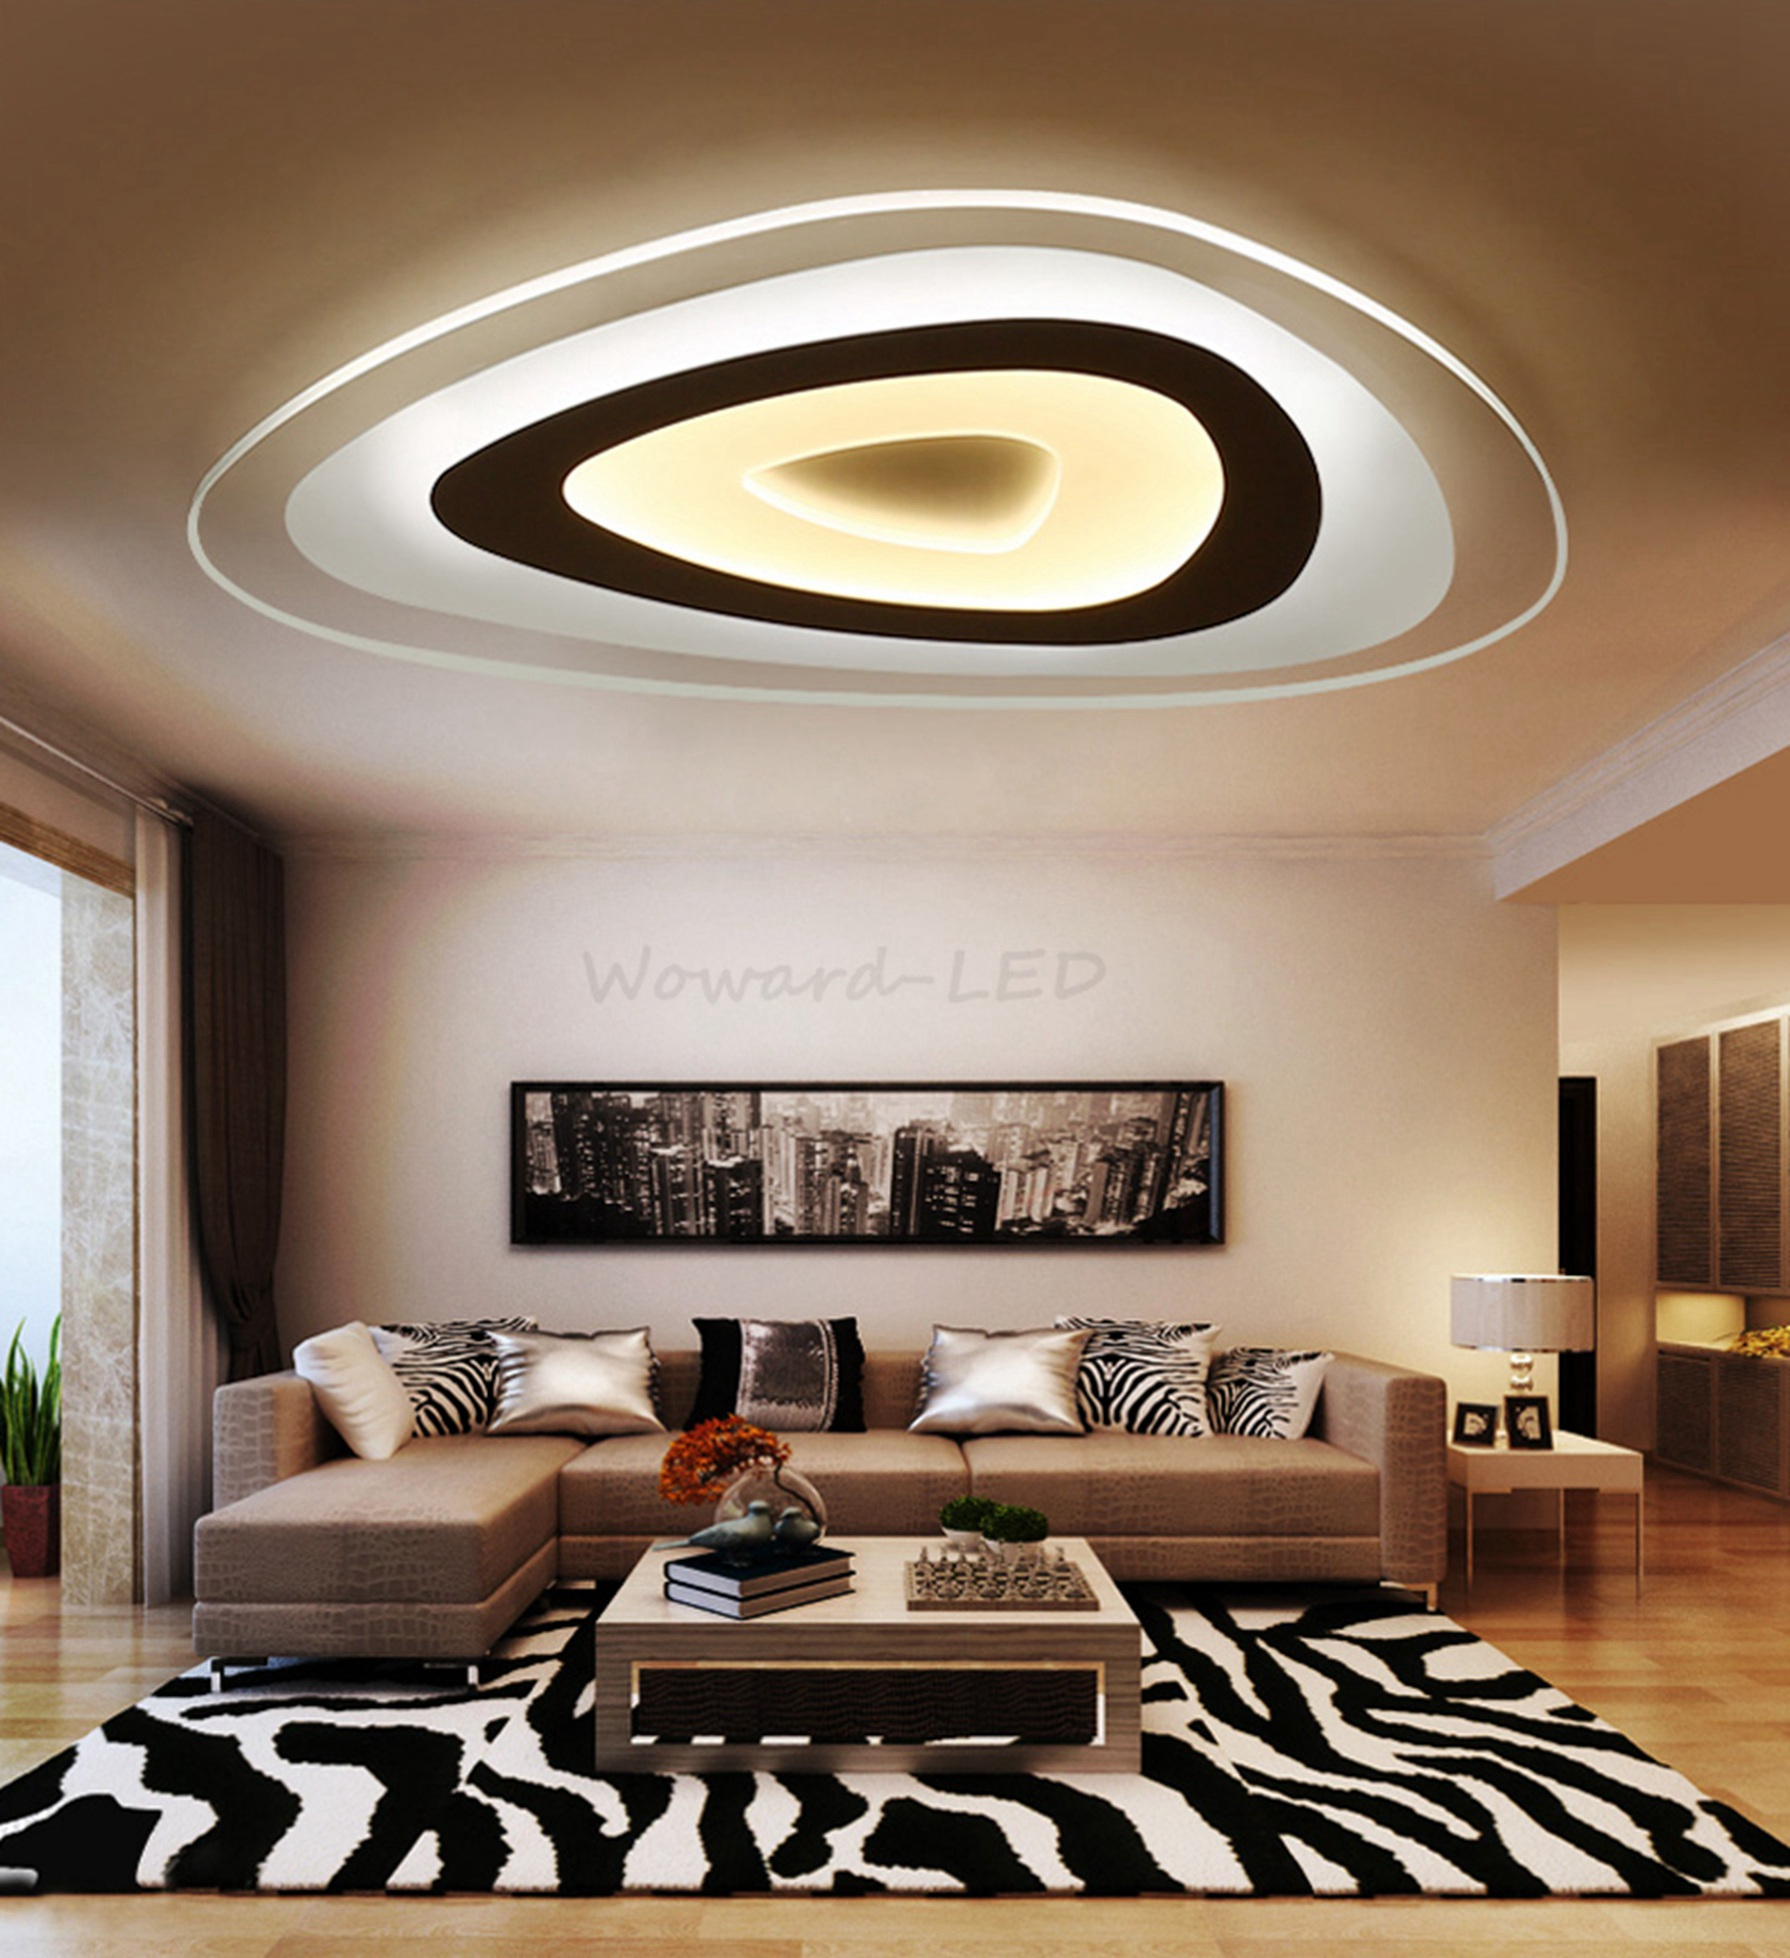 led deckenlampe deckenleuchte 16w bis 114w dimmbar lampe beleuchtung ebay. Black Bedroom Furniture Sets. Home Design Ideas